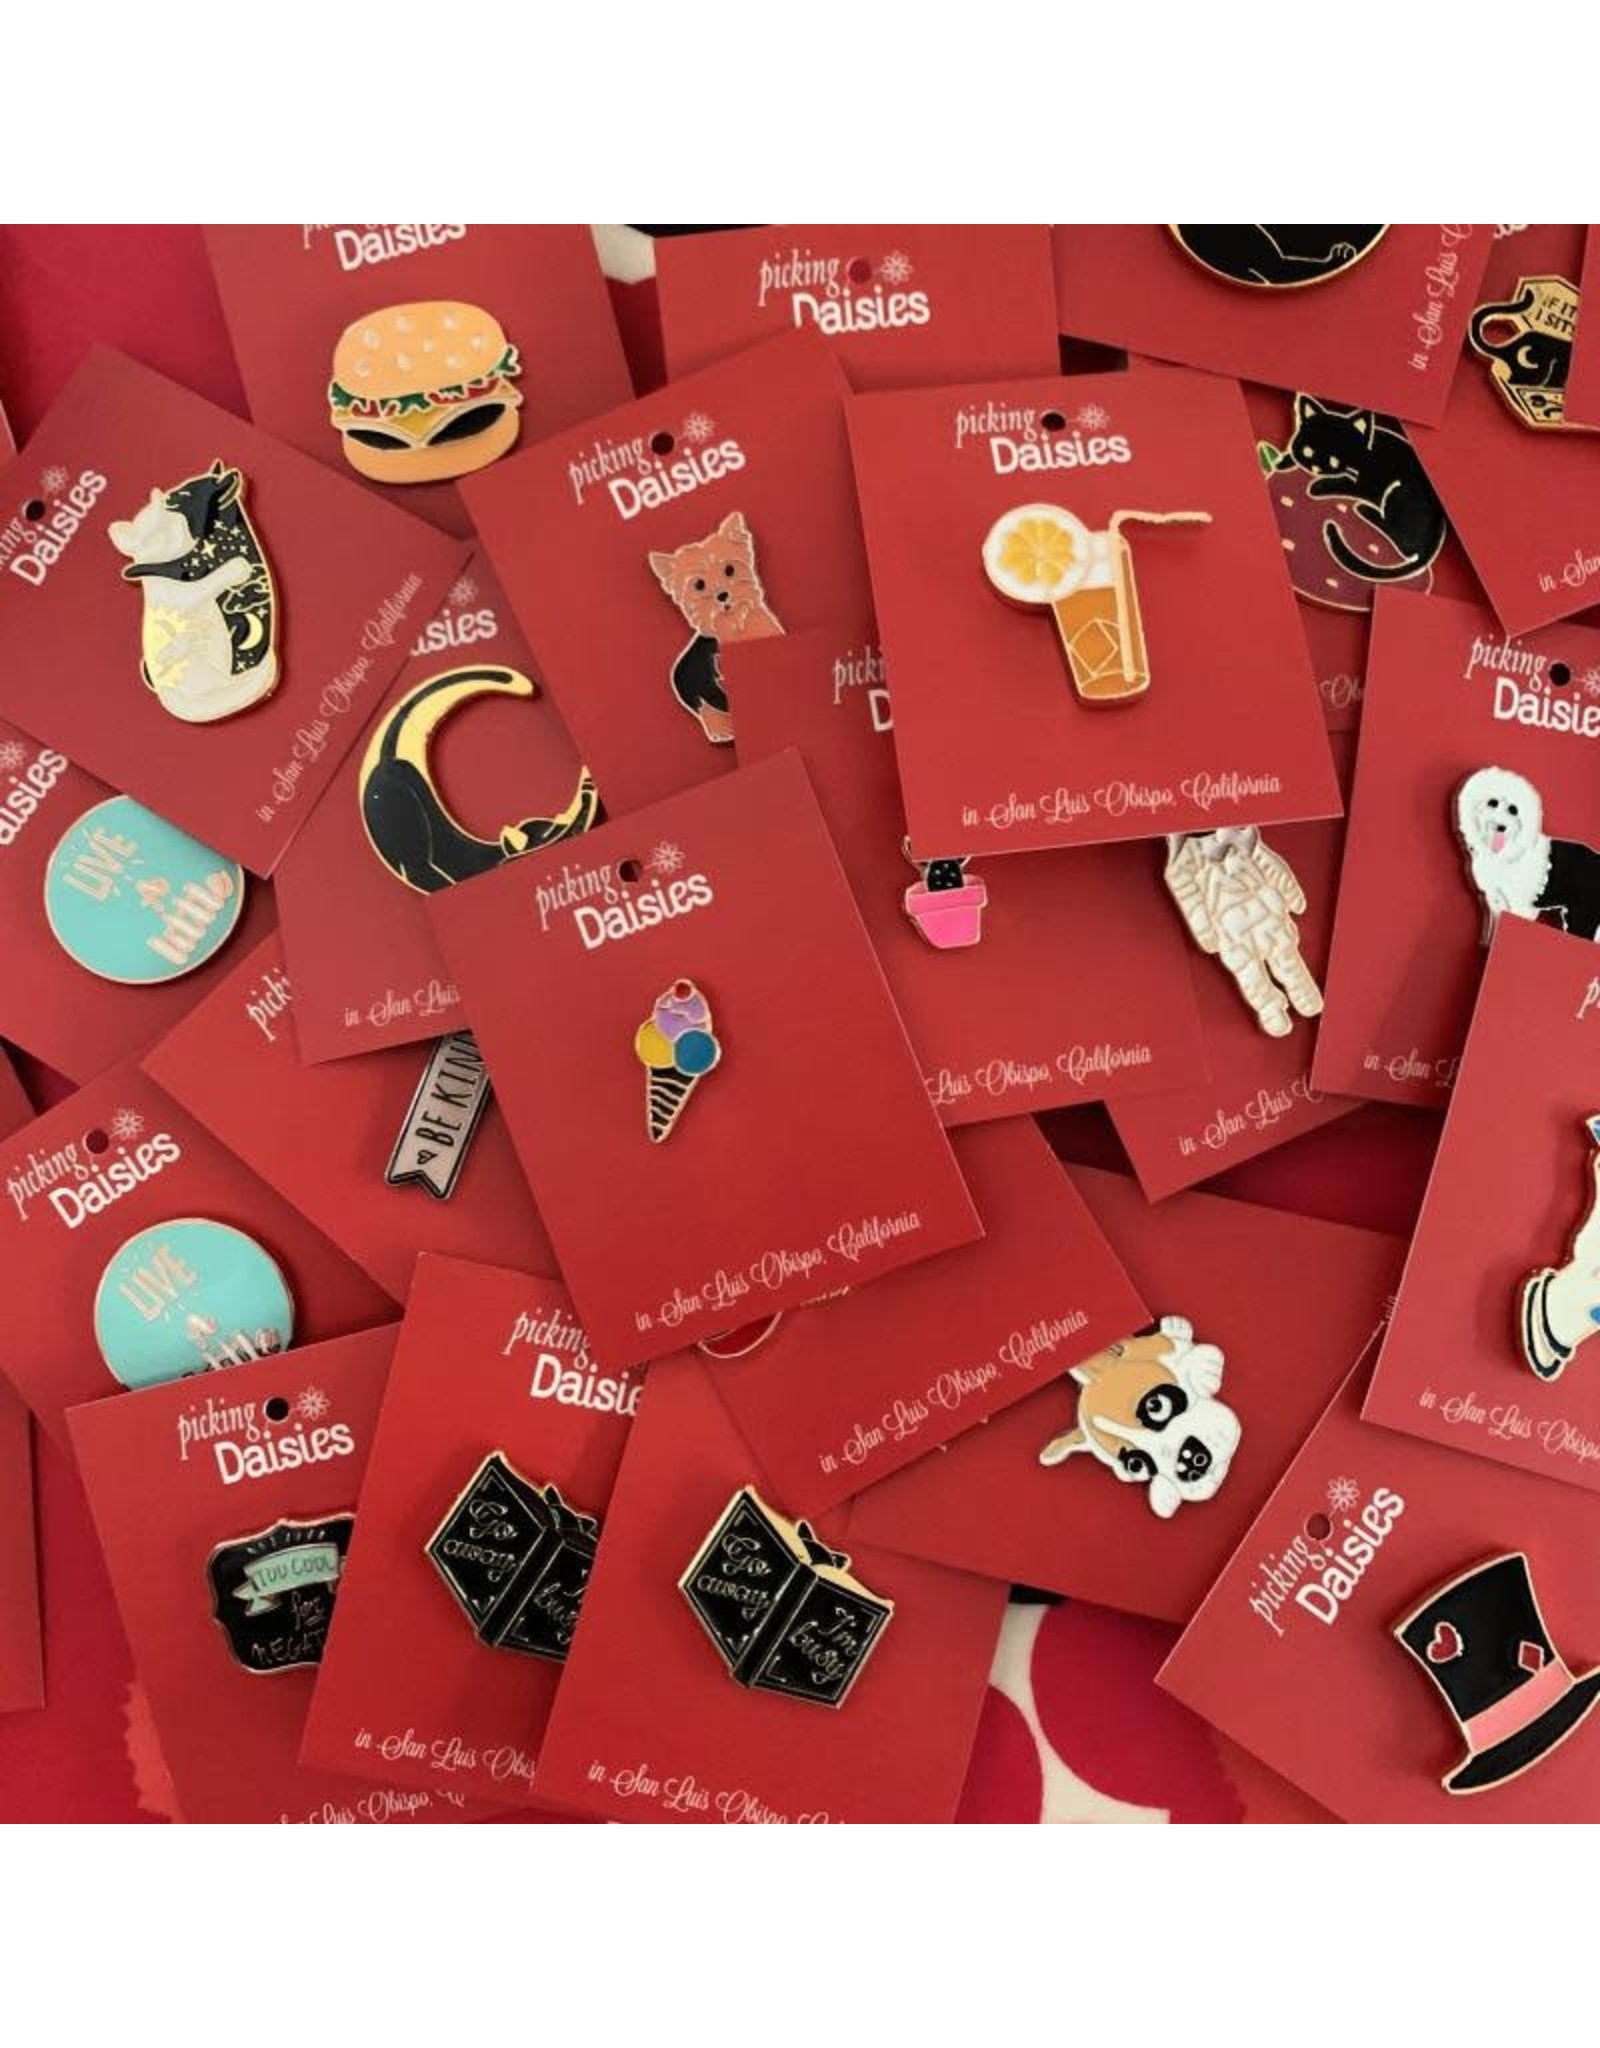 PD Food & Drink Themed Enamel Pins - 5 pcs. Assorted